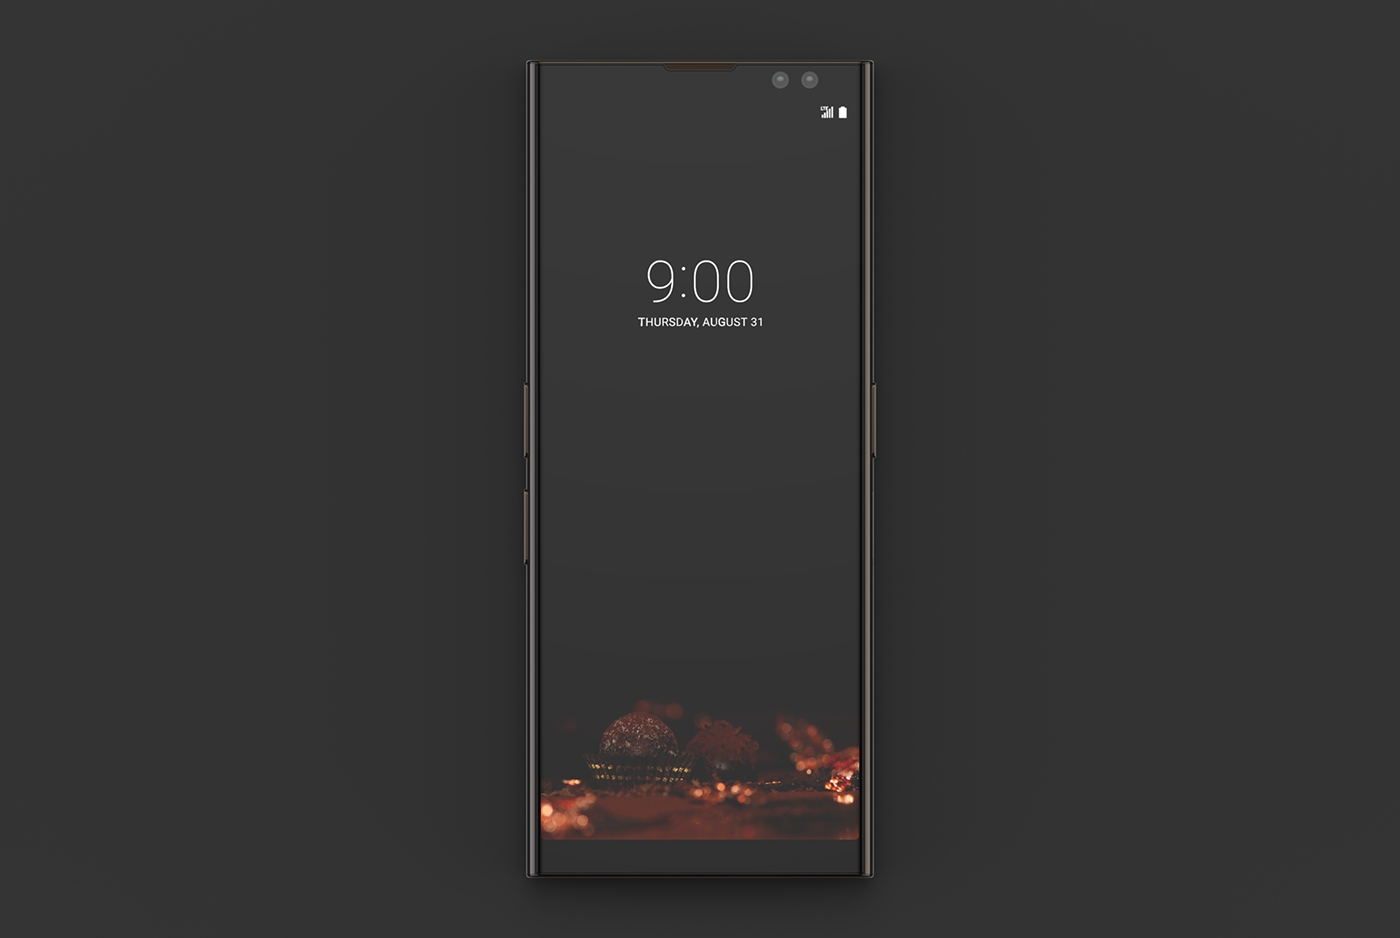 LG-Chocolate-U-concept-phone-5.jpg